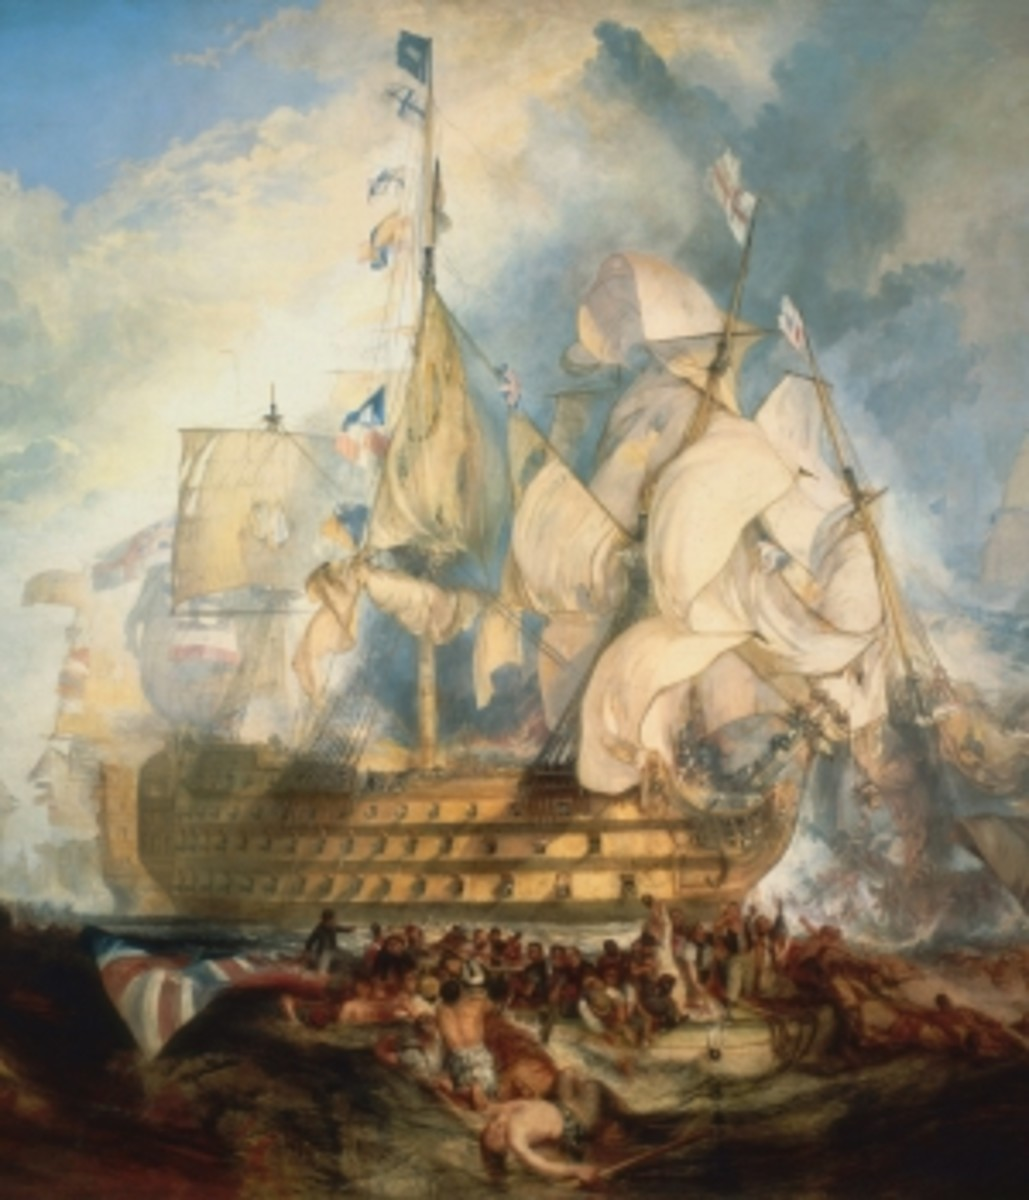 J.M.W. Turner painting of the Battle of Trafalgar.